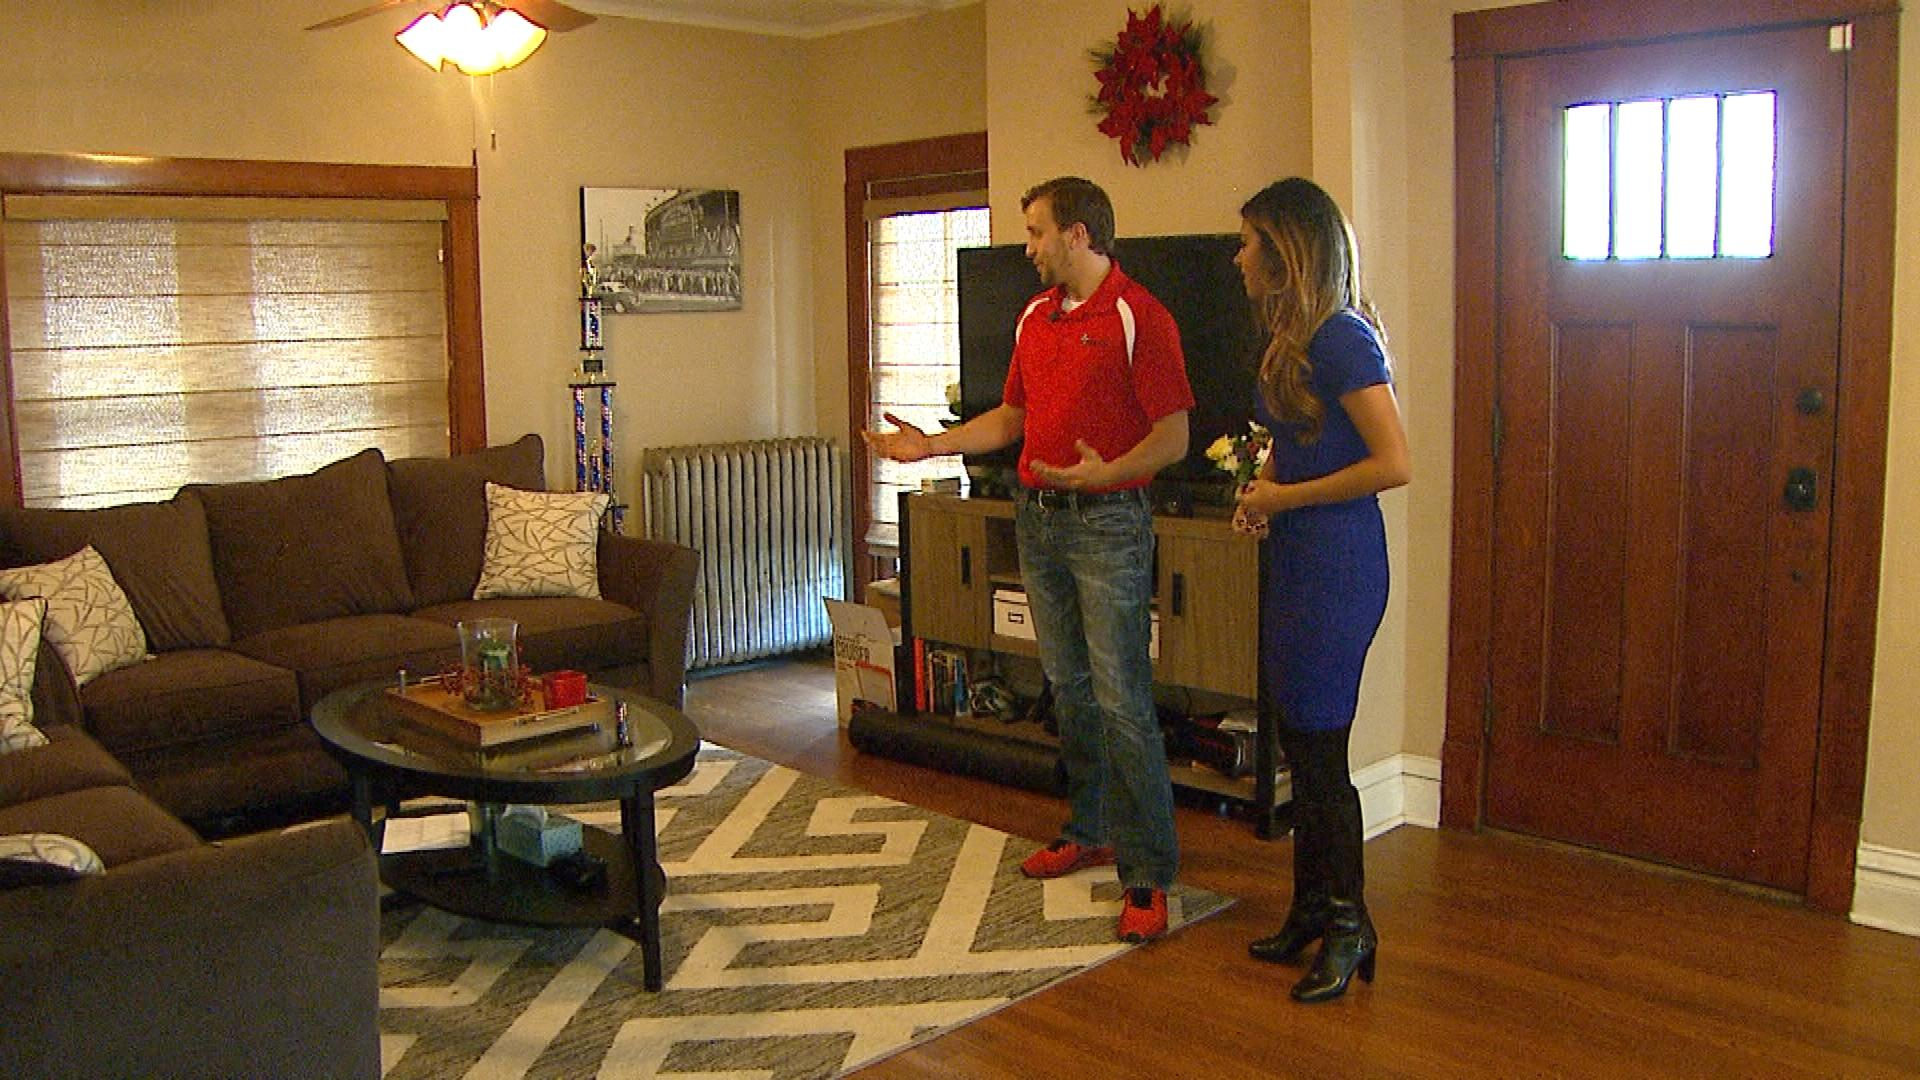 Chris Meiners is interviewed by CBS4's Andrea Flores (credit: CBS)